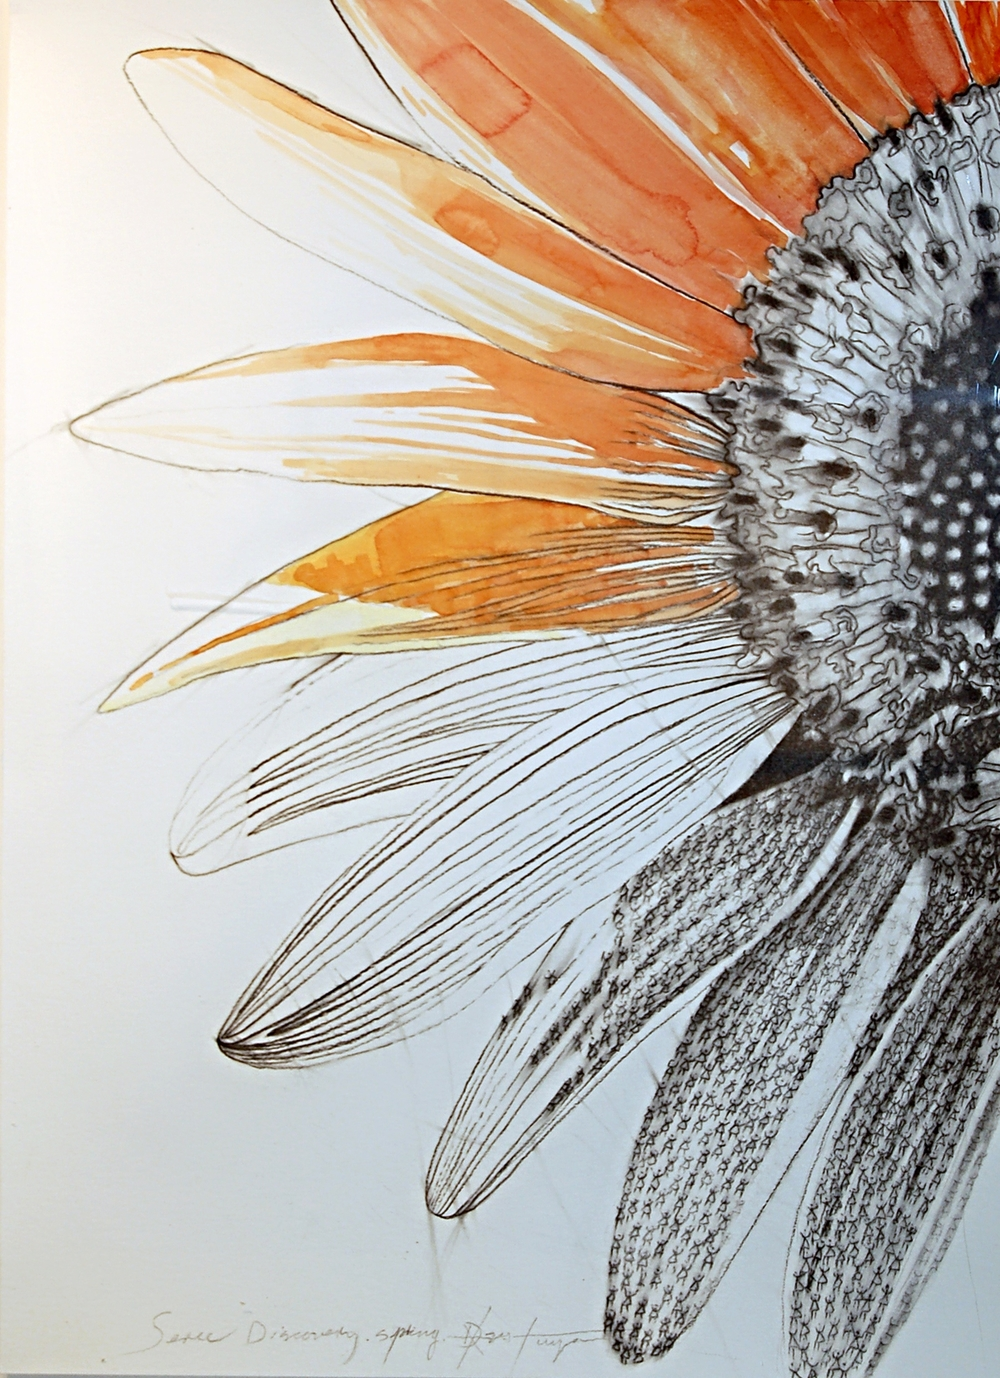 Dalvis Tuya, Discovery Series #3 (Flower), Charcoal and Watercolour on Paper, 2014, 45 x 61 cm